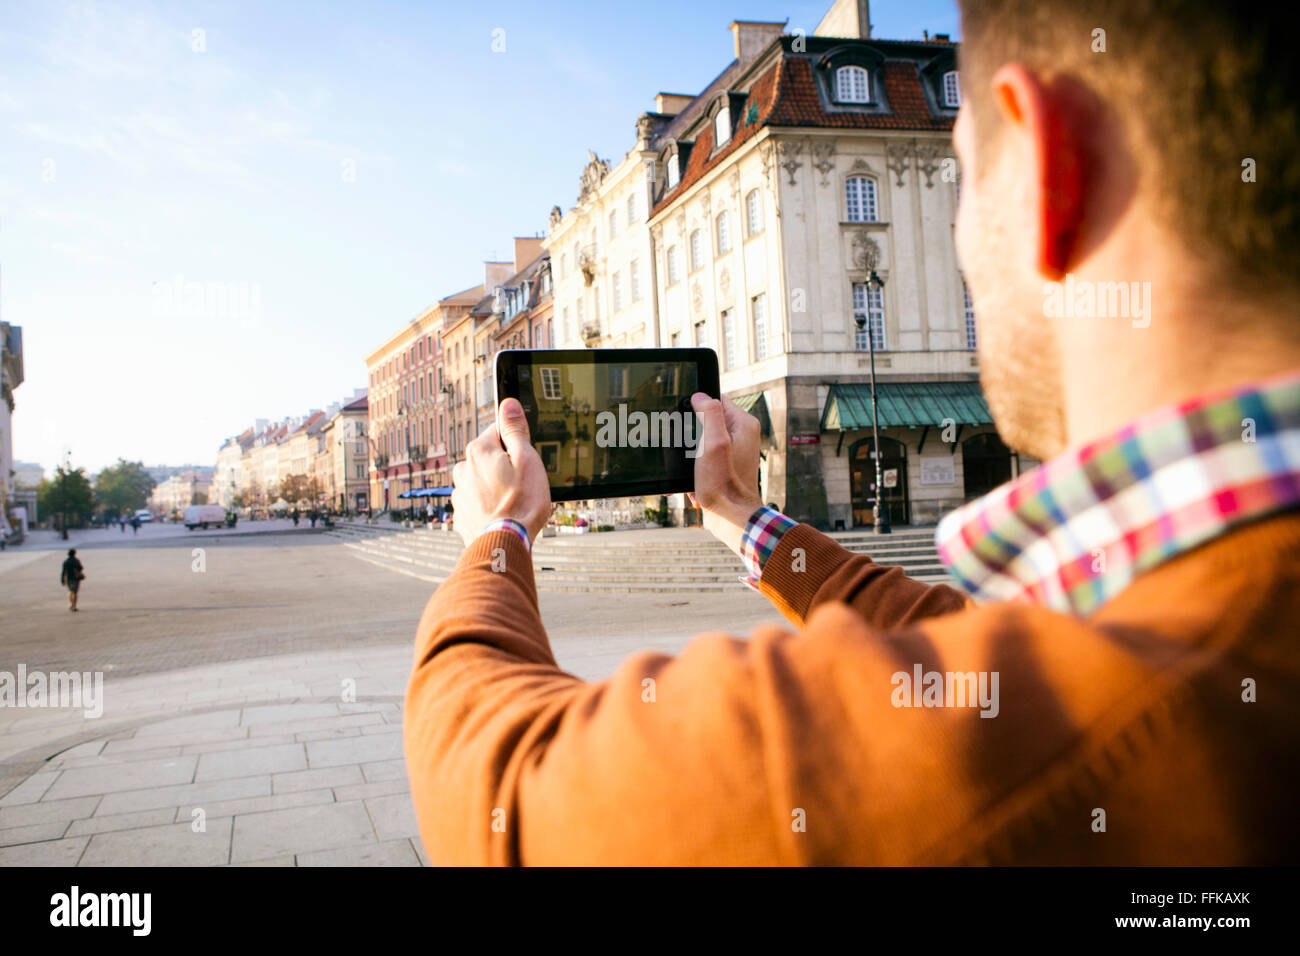 L'homme sur une escapade en ville, de prendre une photo avec smart phone Photo Stock